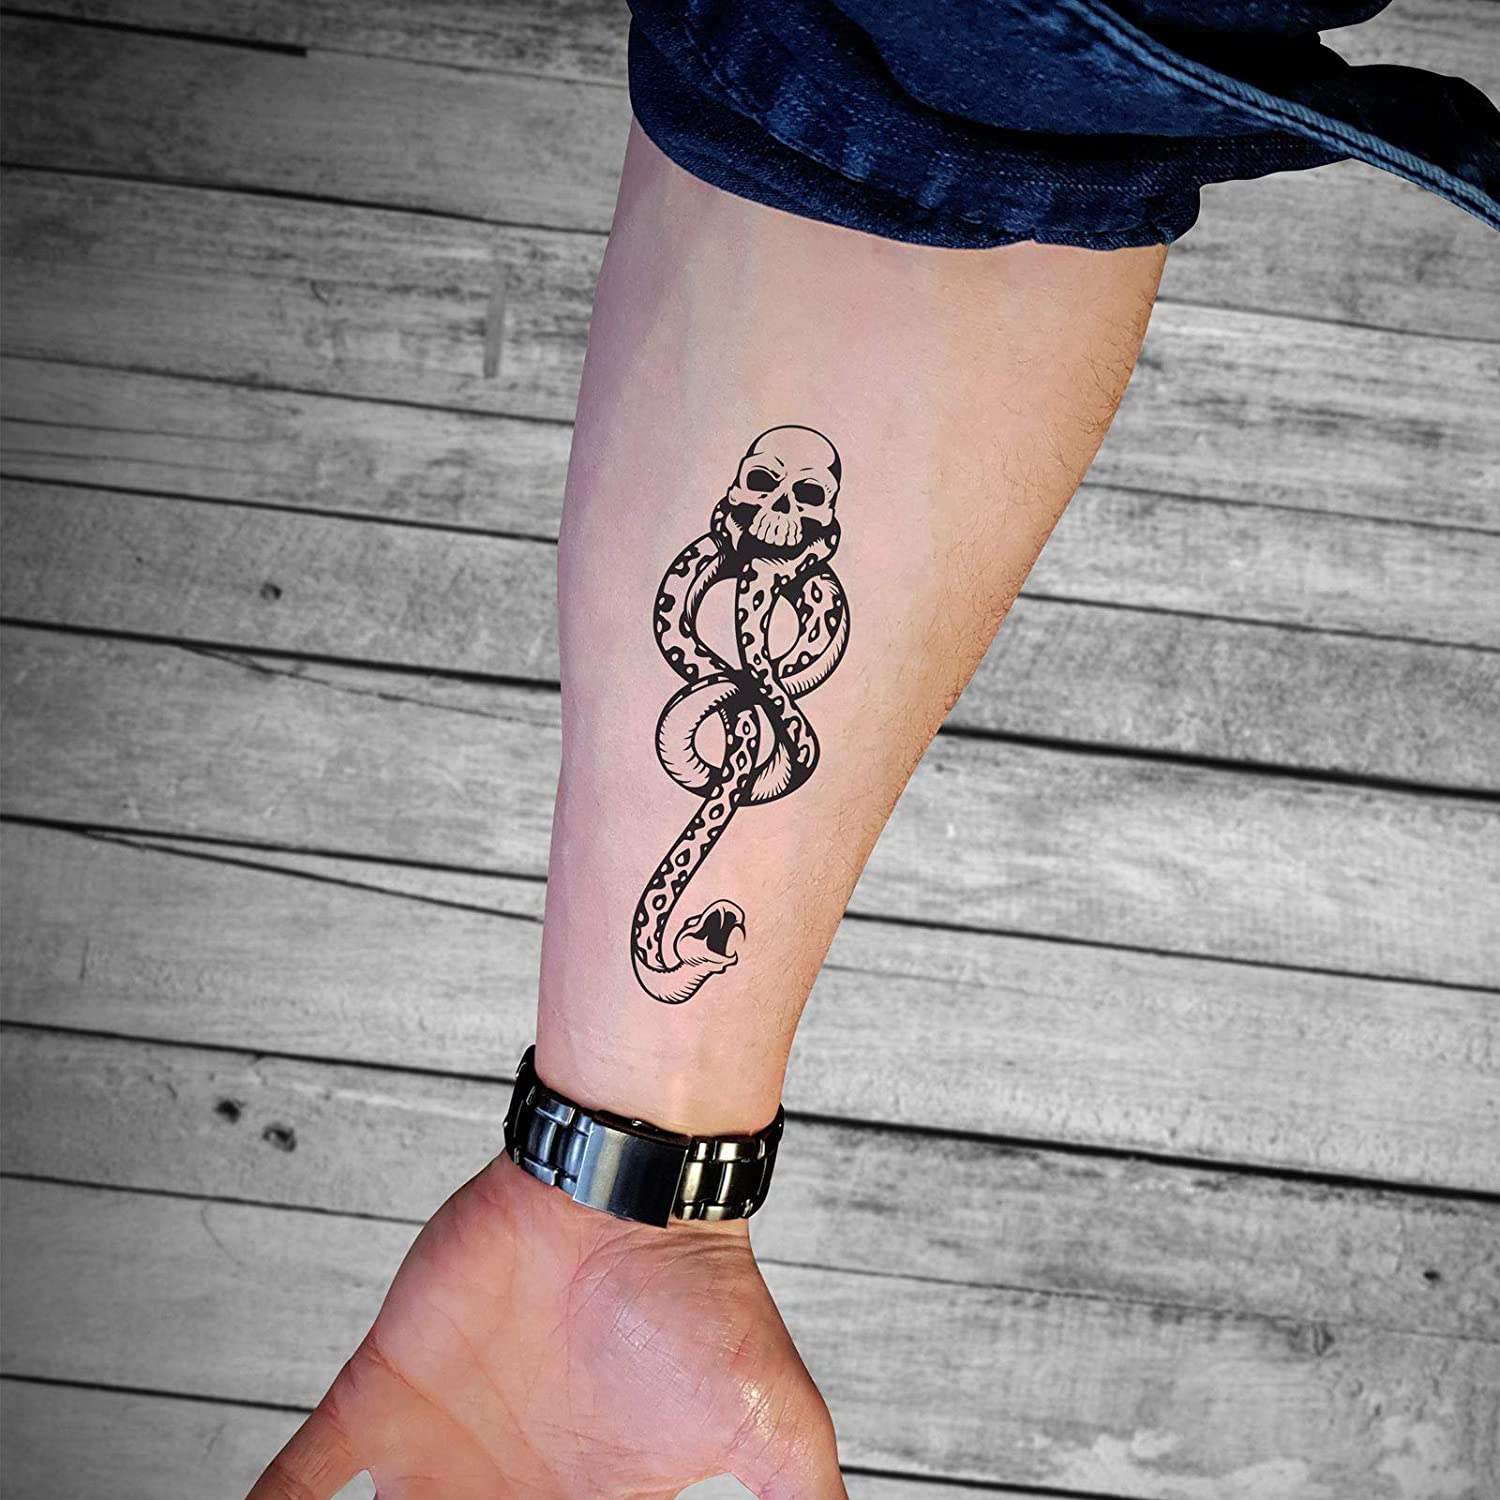 Amazon Com Harry Potter Tattoos 15 X 10cm Beauty I have been since i was like, eight. harry potter tattoos 15 x 10cm